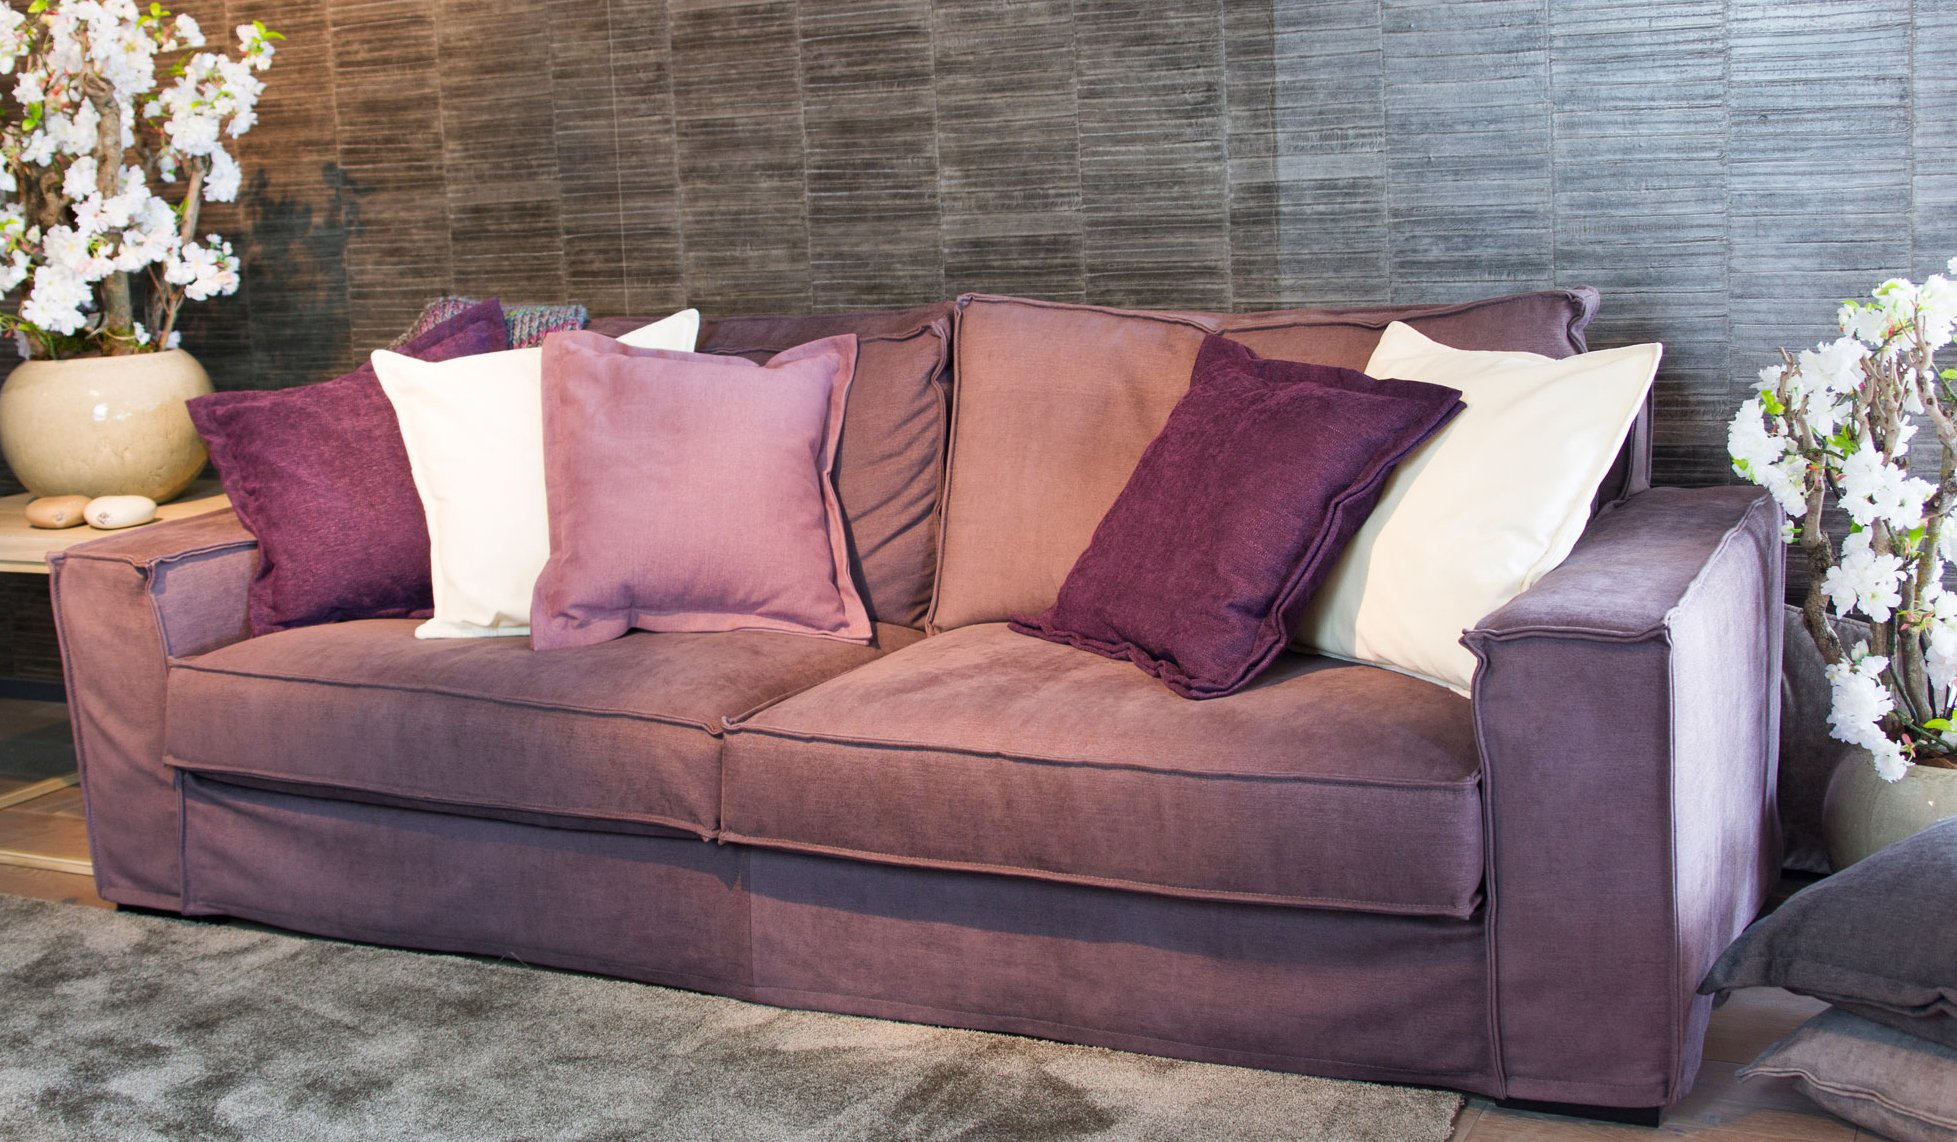 sofa chairs cosy -smellink interiors